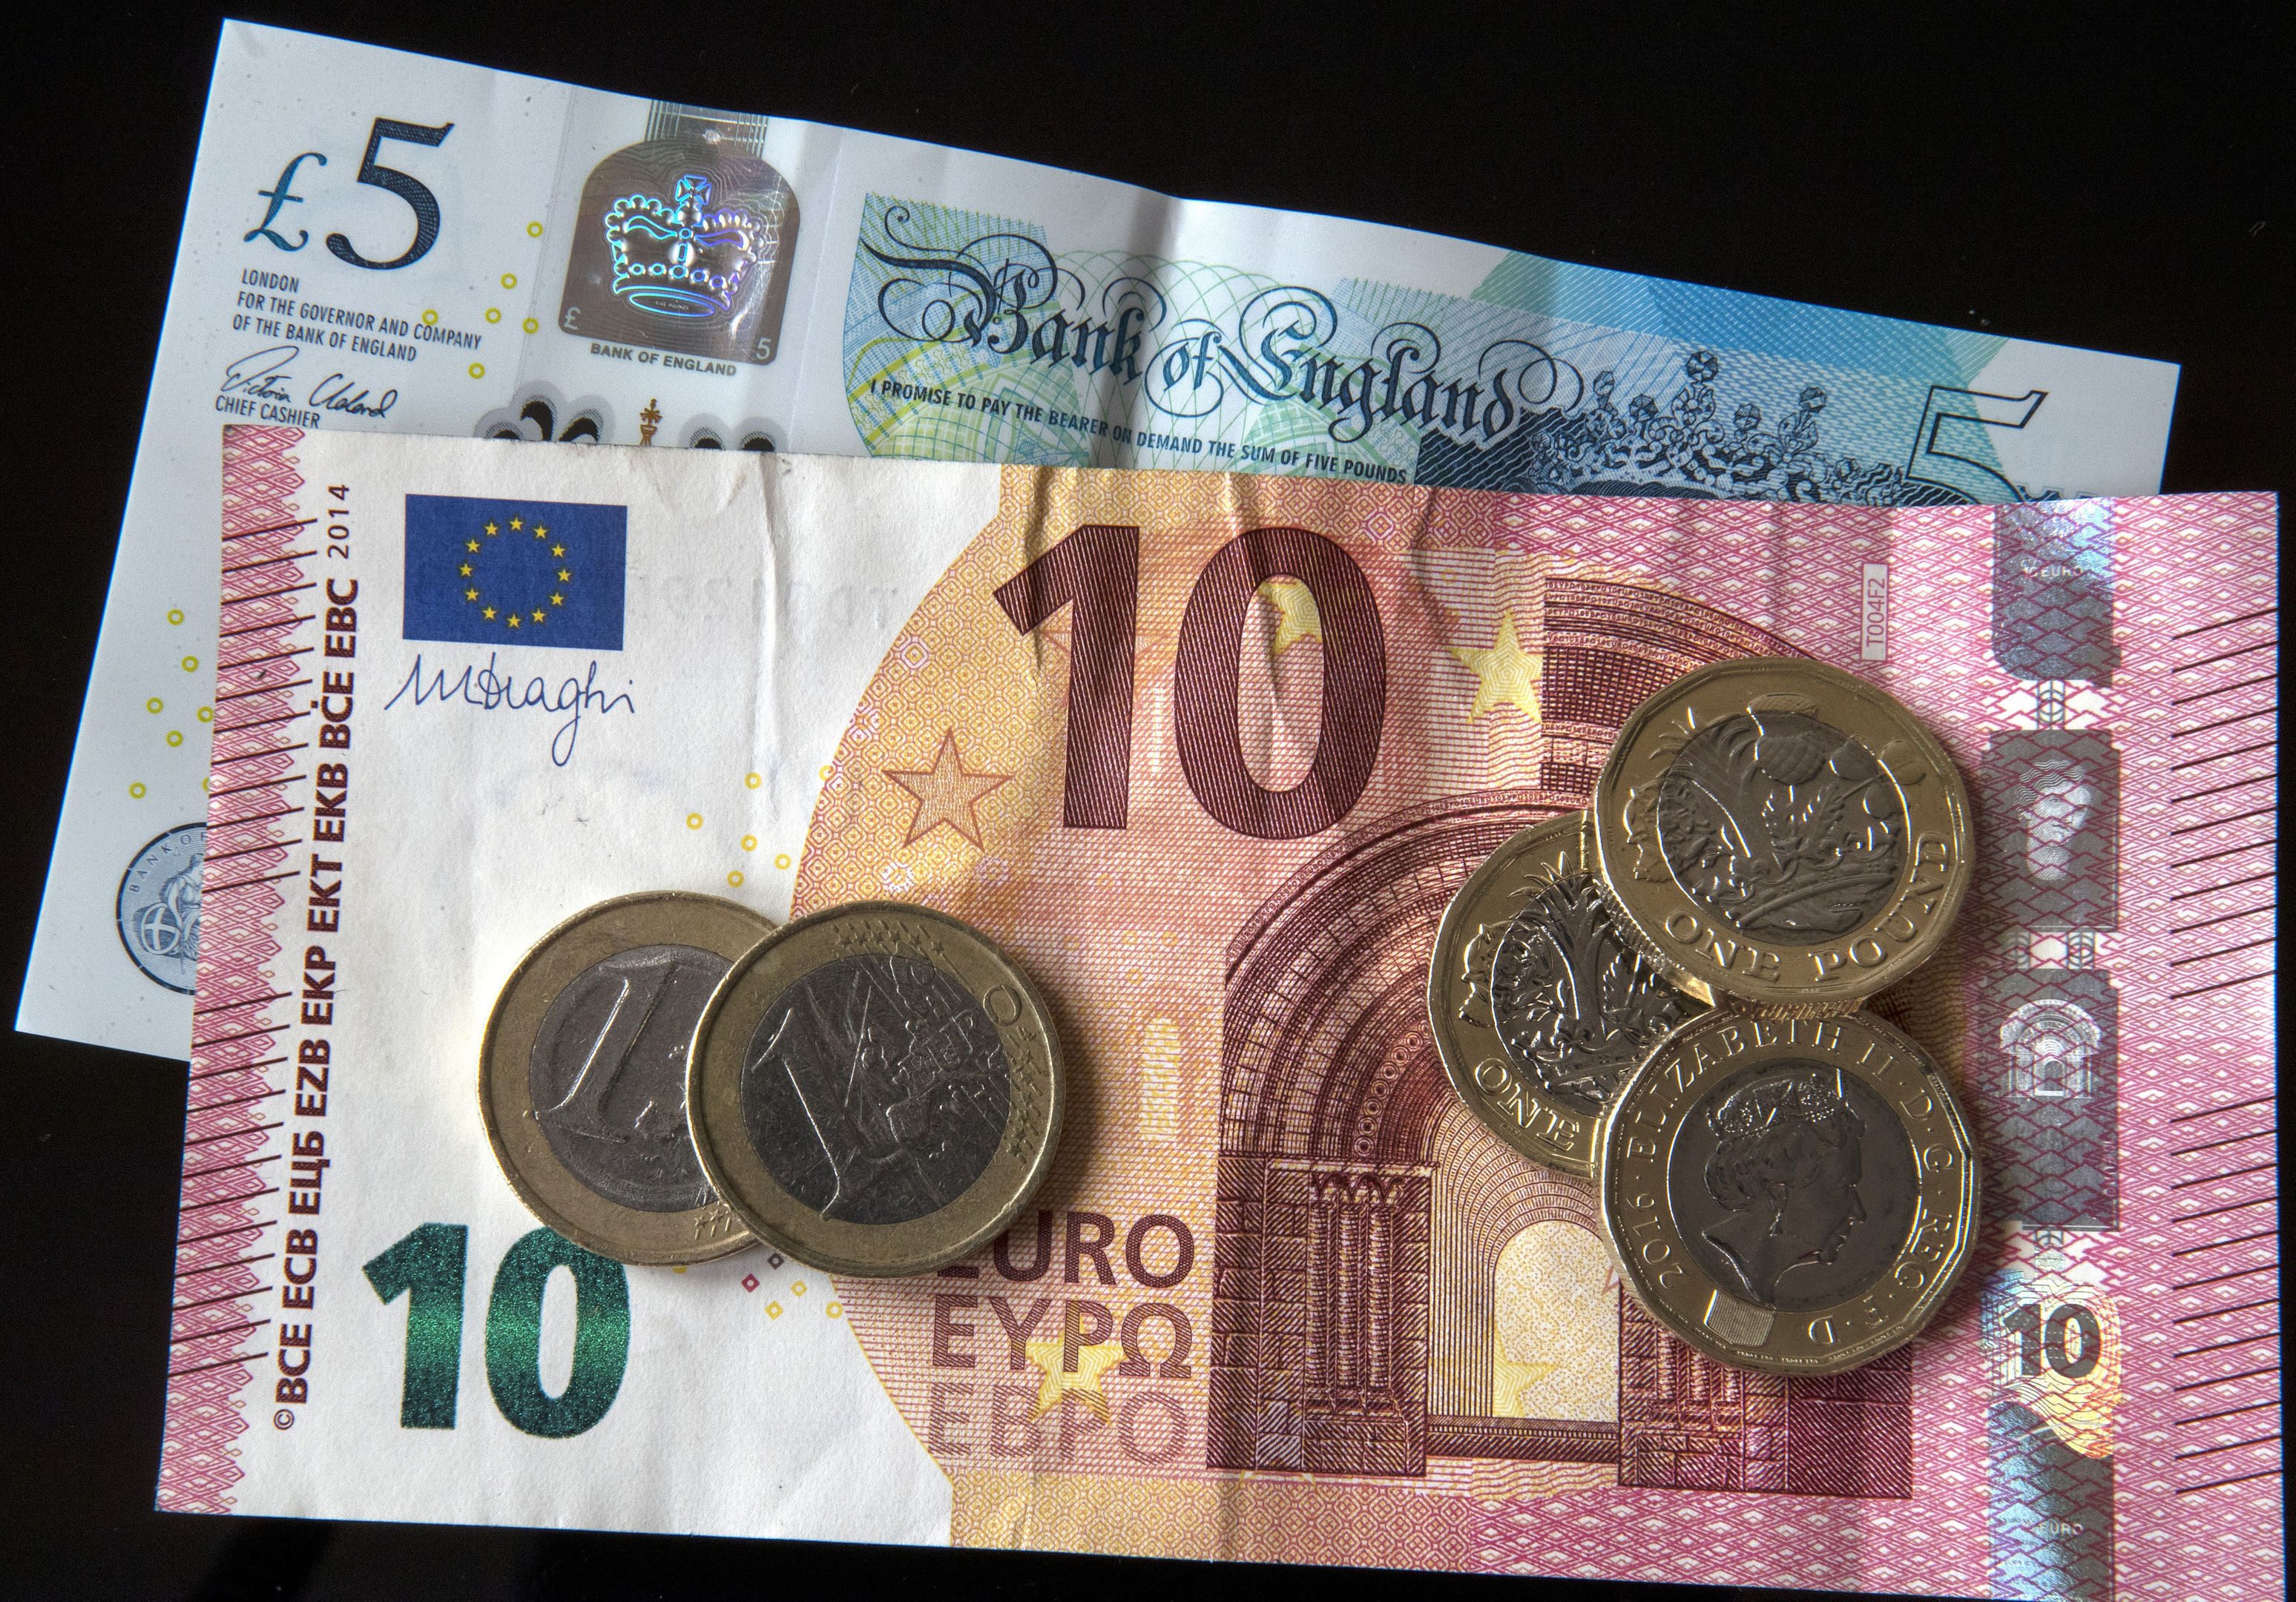 FairFX reported that the pound has fallen 3% against the euro since the start of the summer holidays a month ago to a rate of 1.09, meaning tourists are getting 32 fewer euros for every £1,000 they exchange. (Peter Byrne/PA Wire)